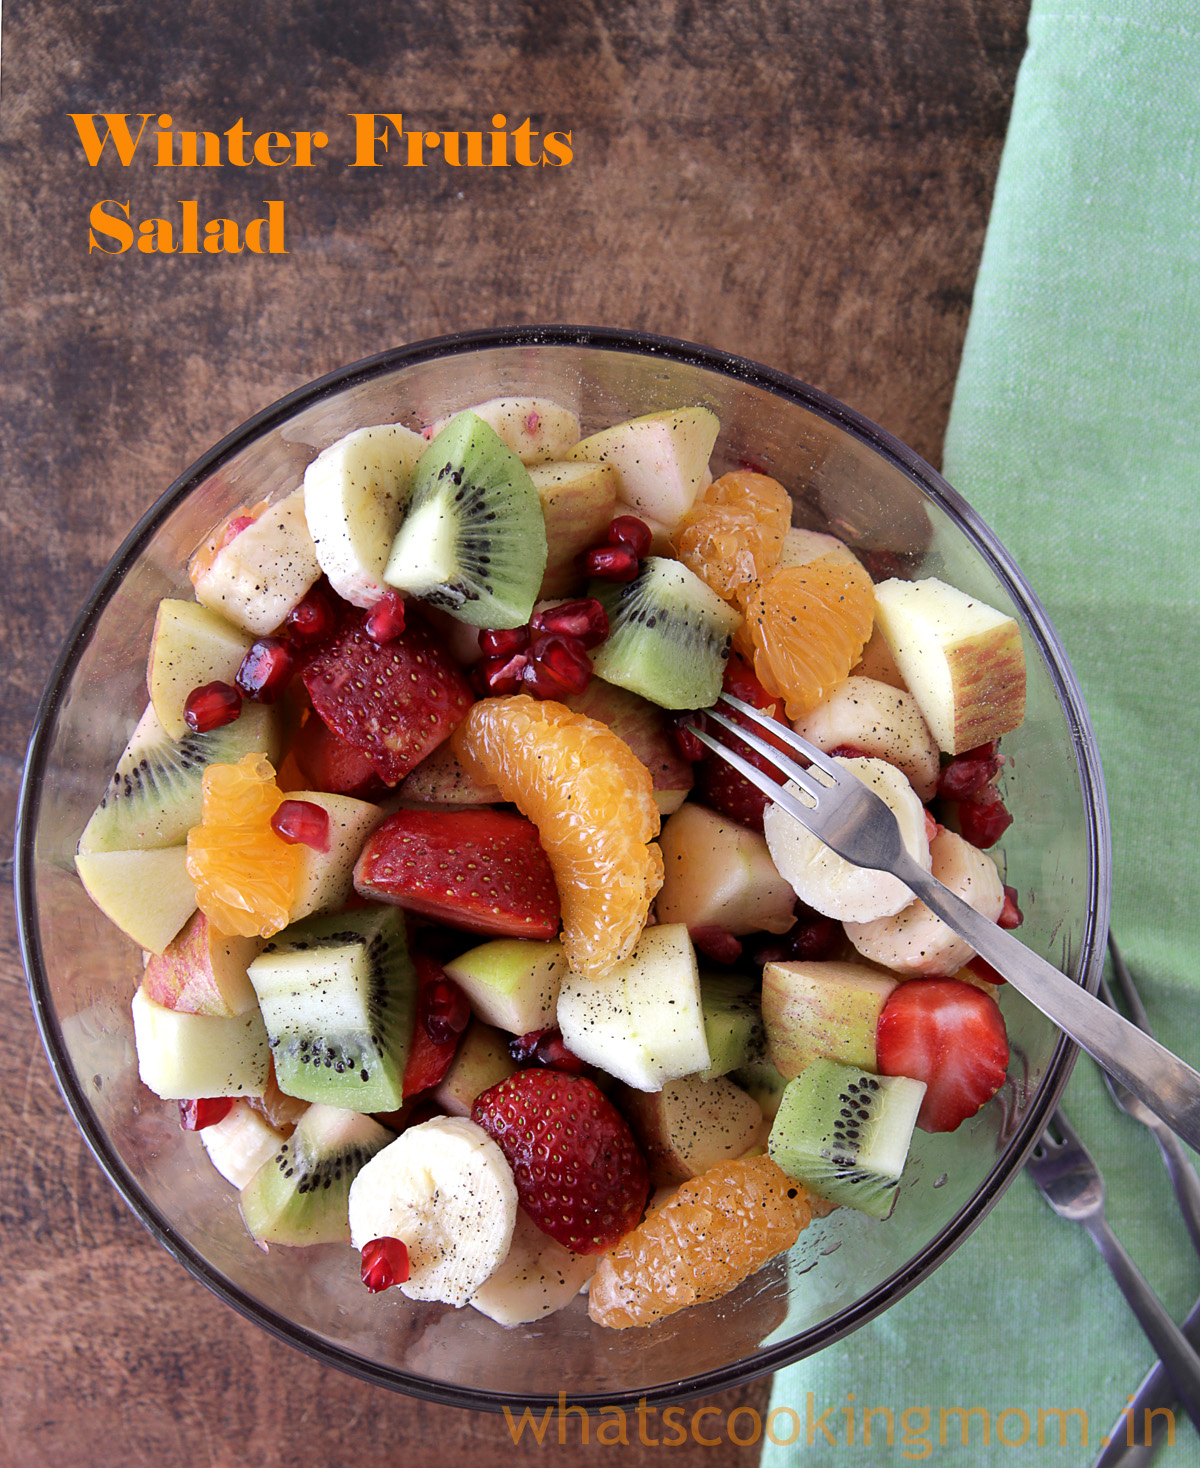 Winter Fruits Salad served in a glass bowl with fork